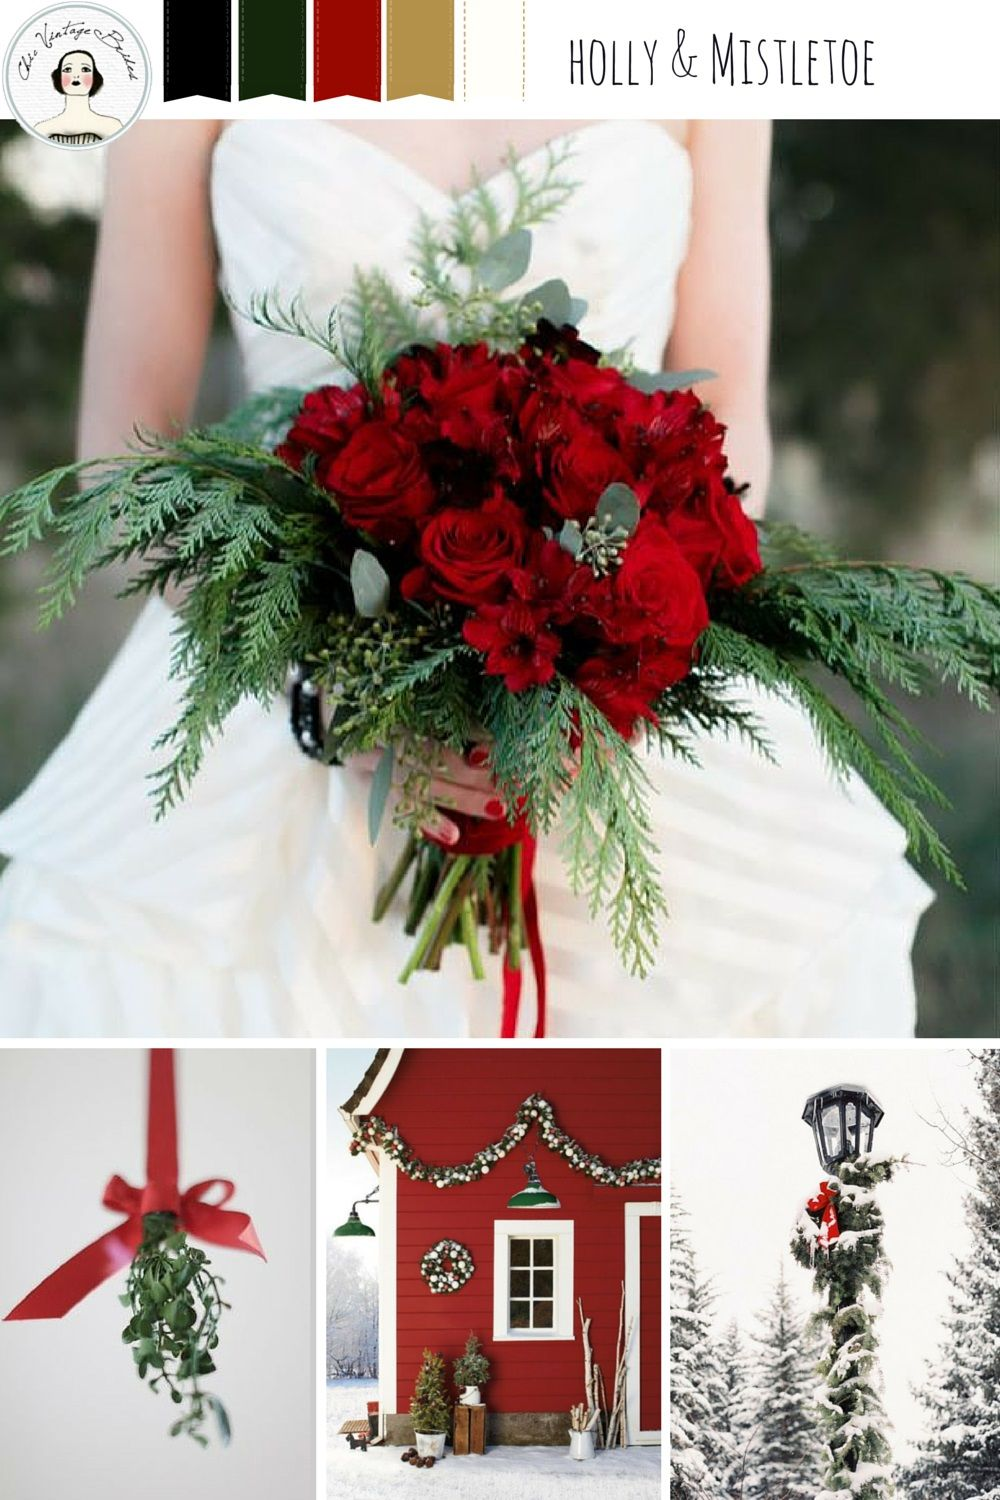 holly and mistletoe christmas wedding inspiration in rich shades of red gold and green